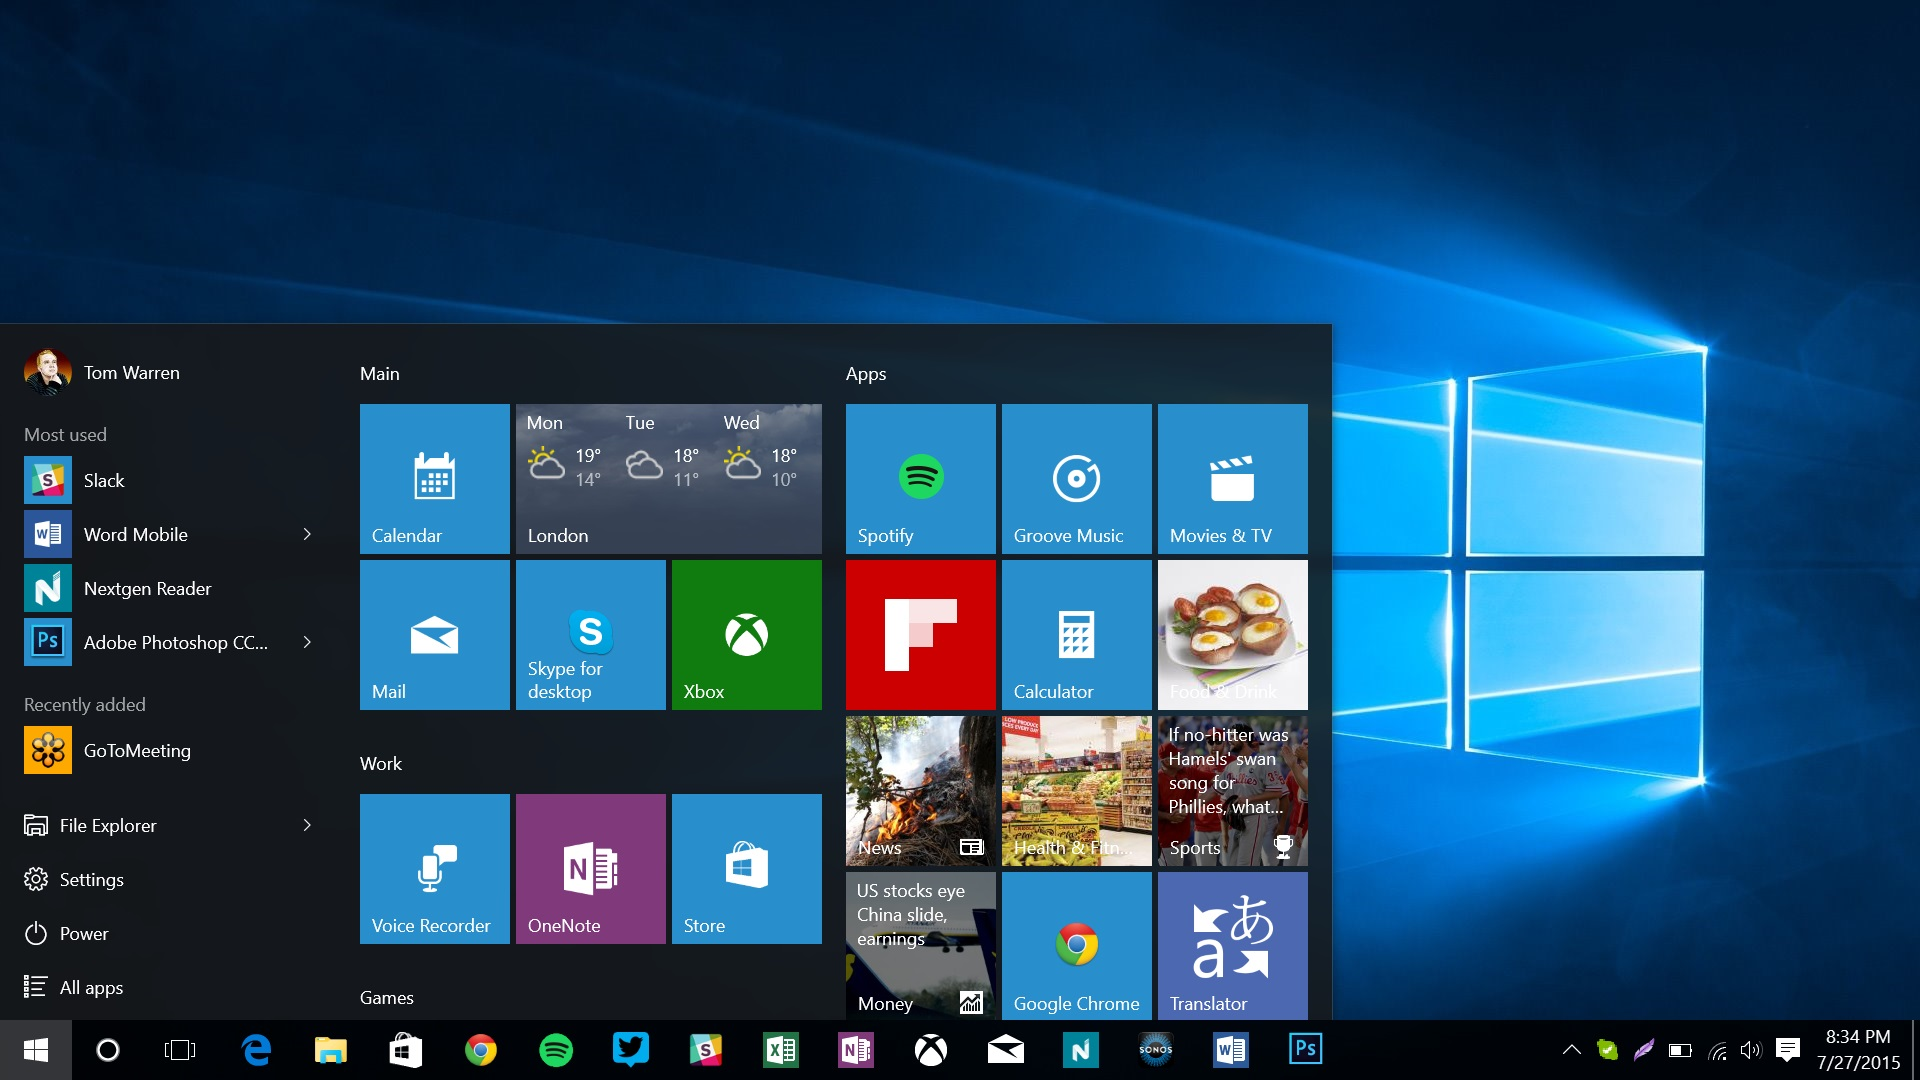 Google image from http://www.theverge.com/2015/7/28/9045331/microsoft-windows-10-review